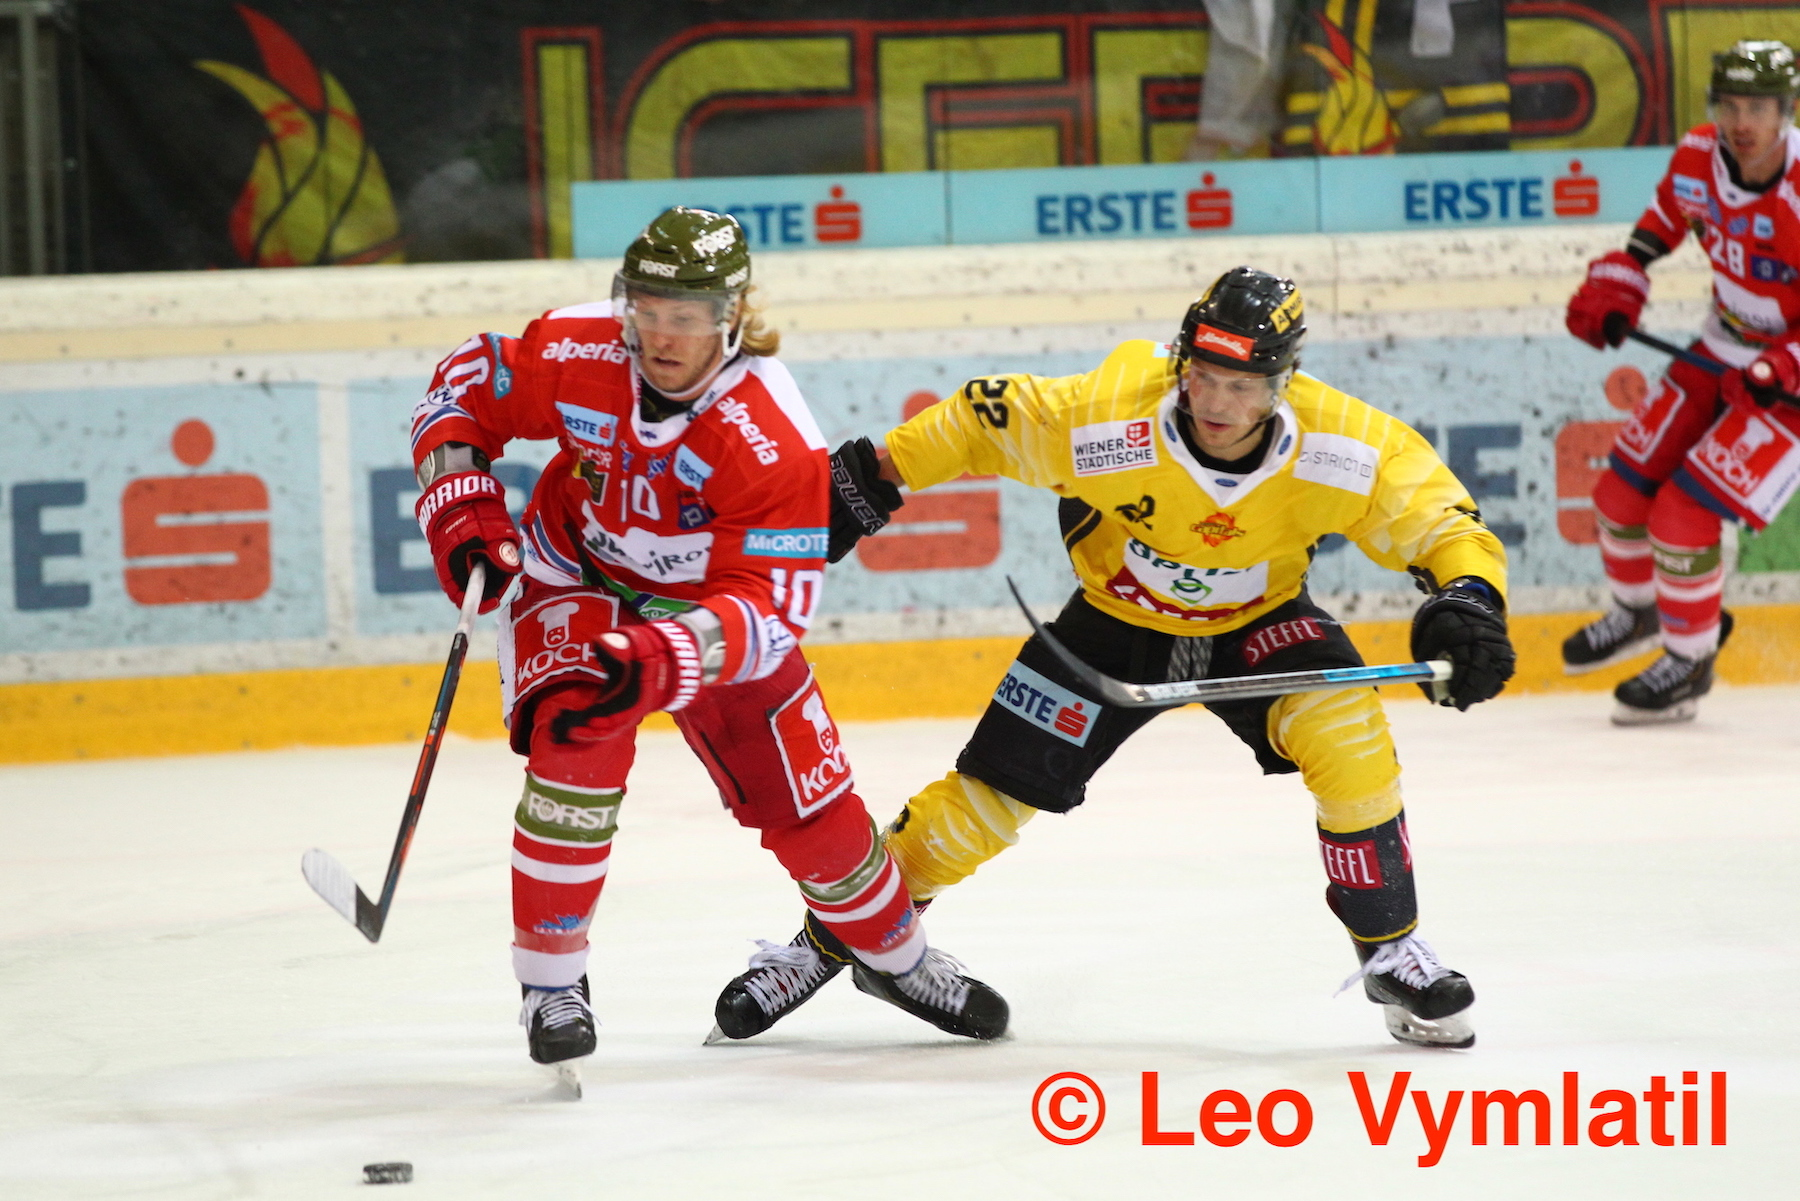 PH VIENNACAPITALS q4d6ck